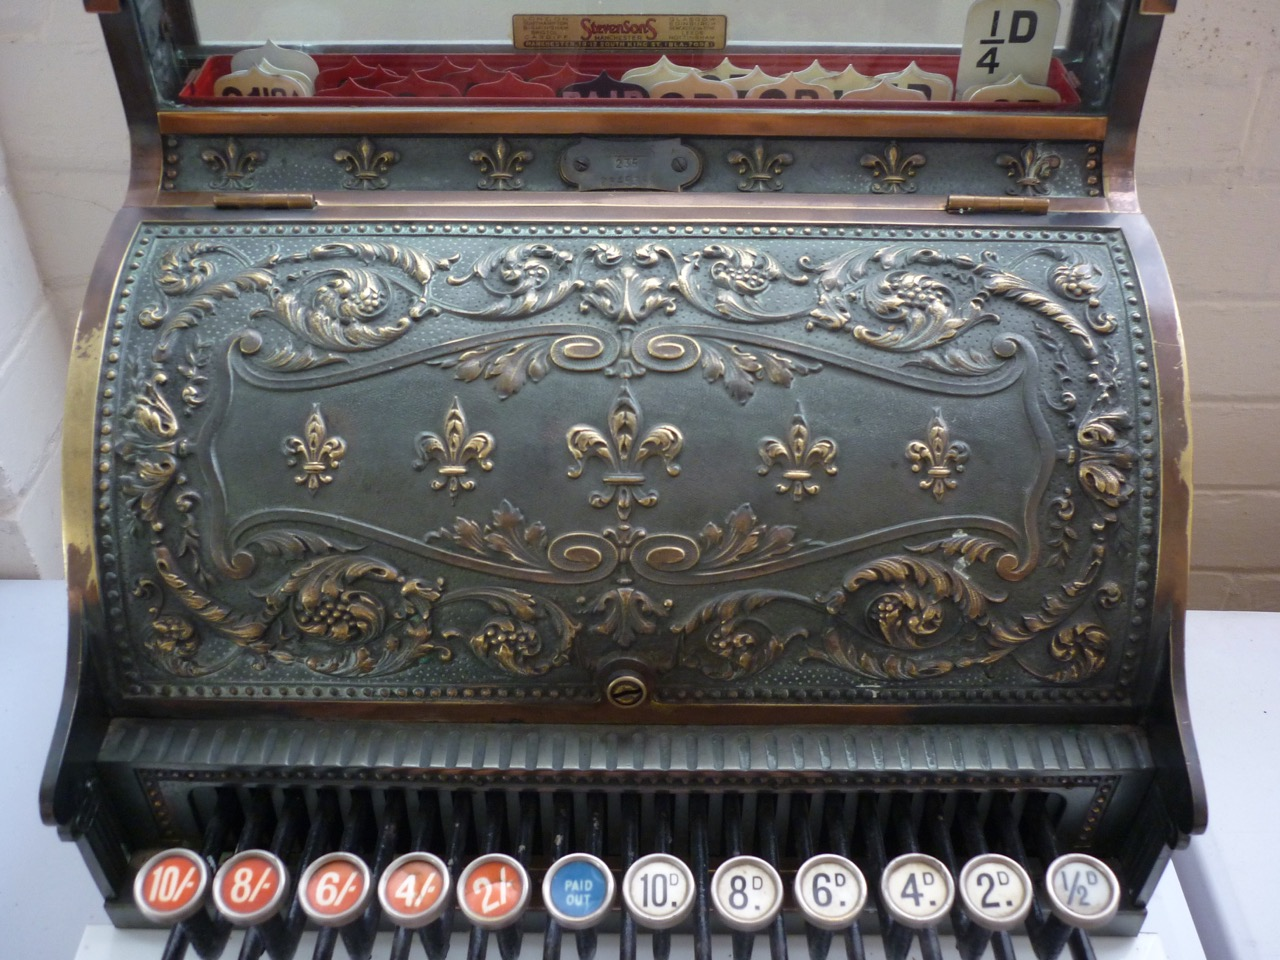 Lot 1 - A late 19th / early 20th Century National cash register